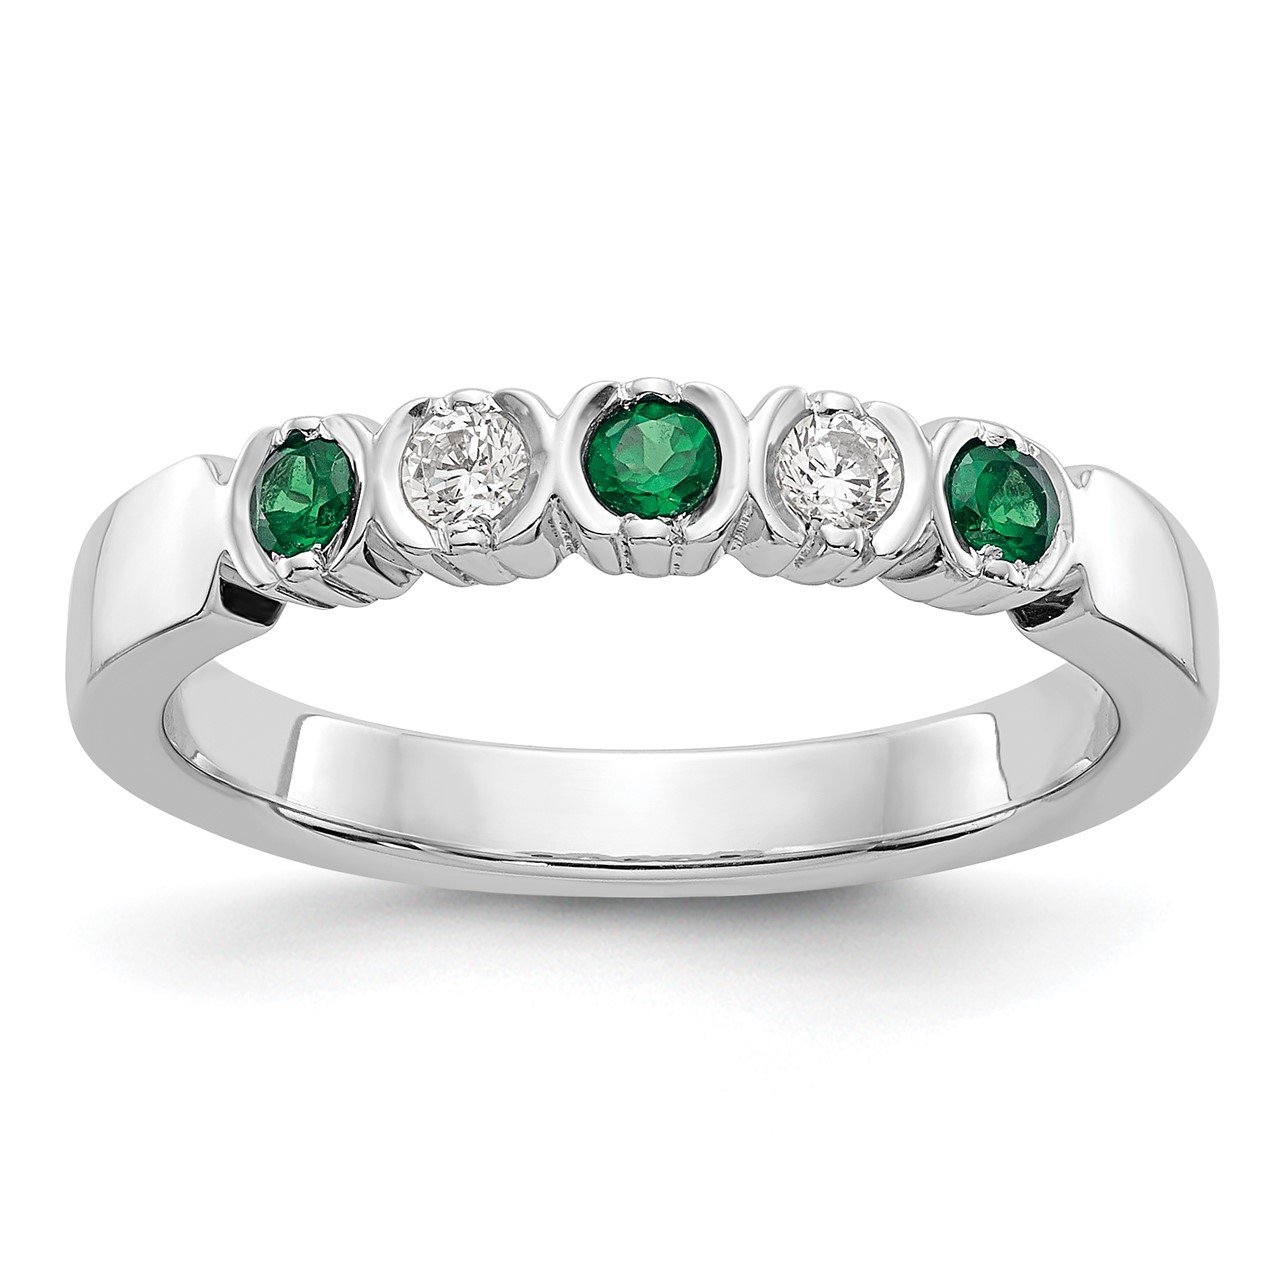 14k White Gold Diamond with Emerald Band